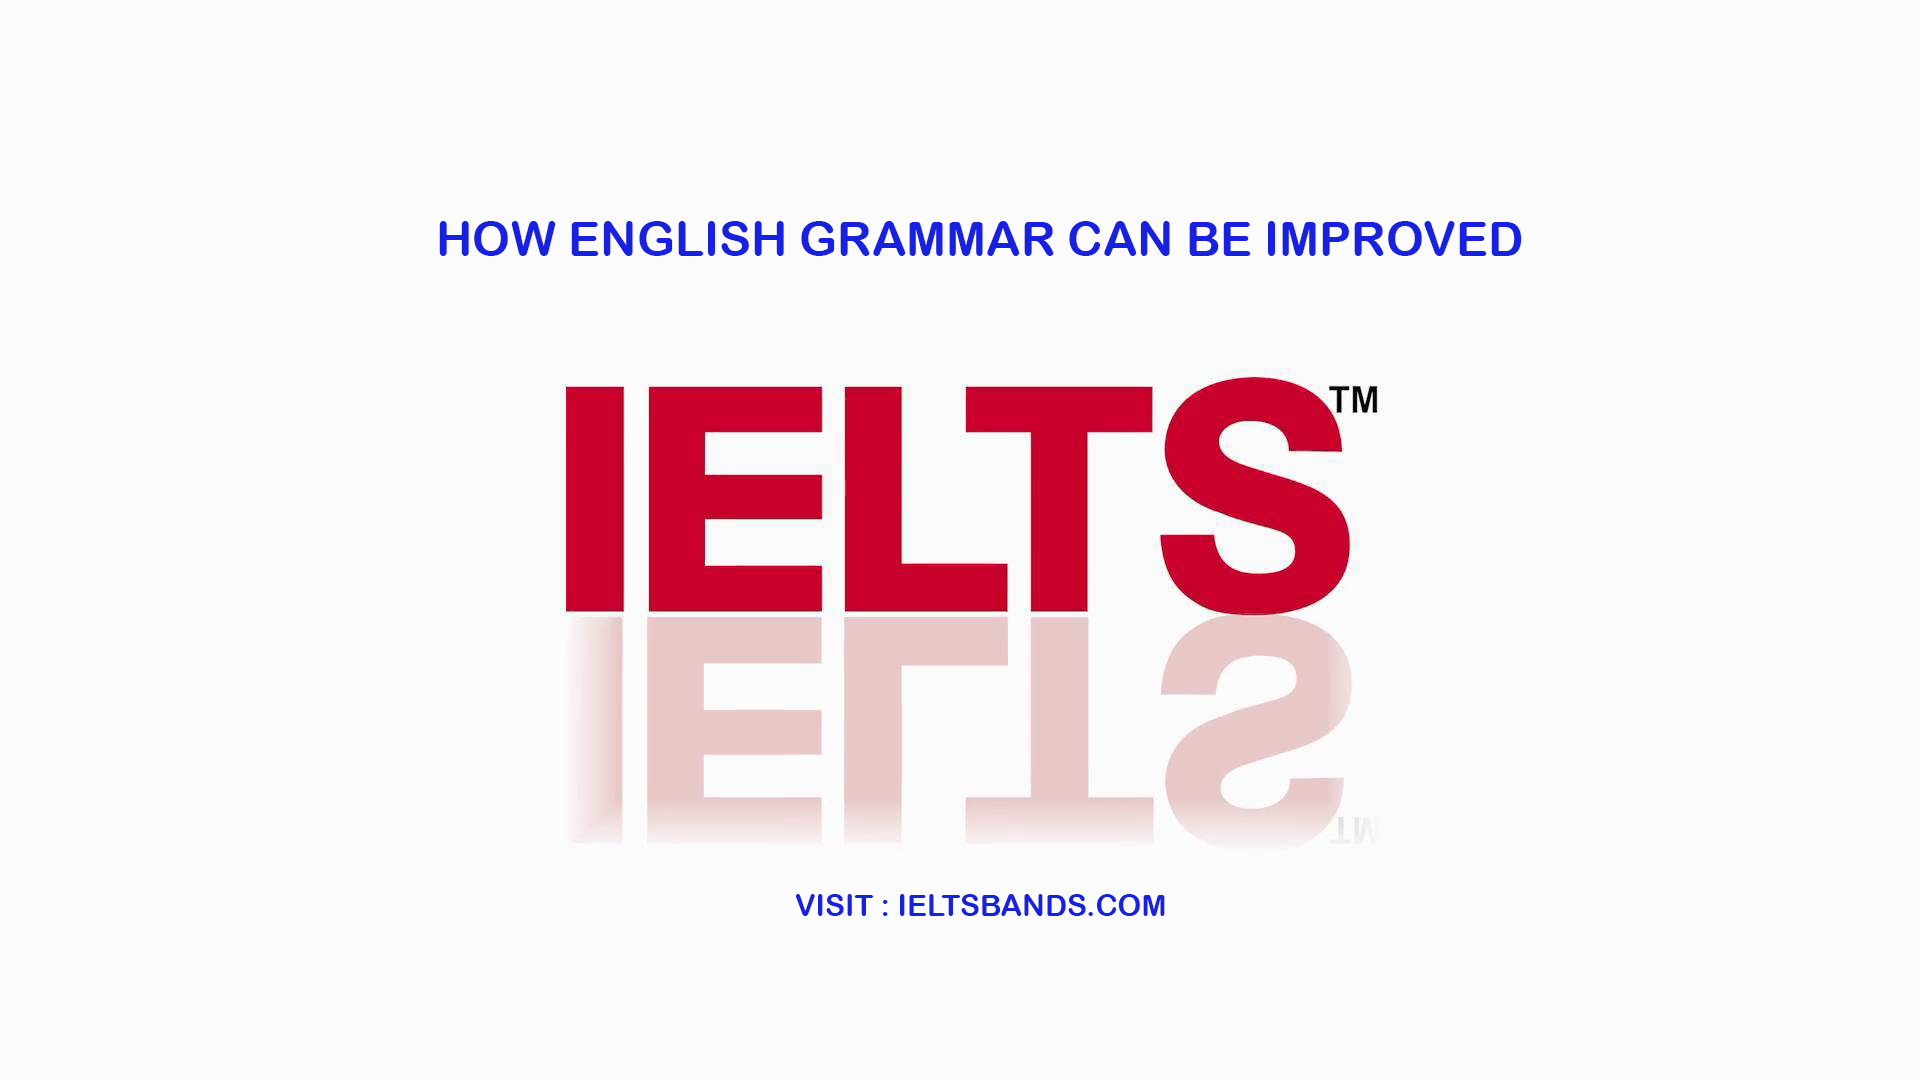 HOW IELTS GRAMMAR CAN BE IMPROVED